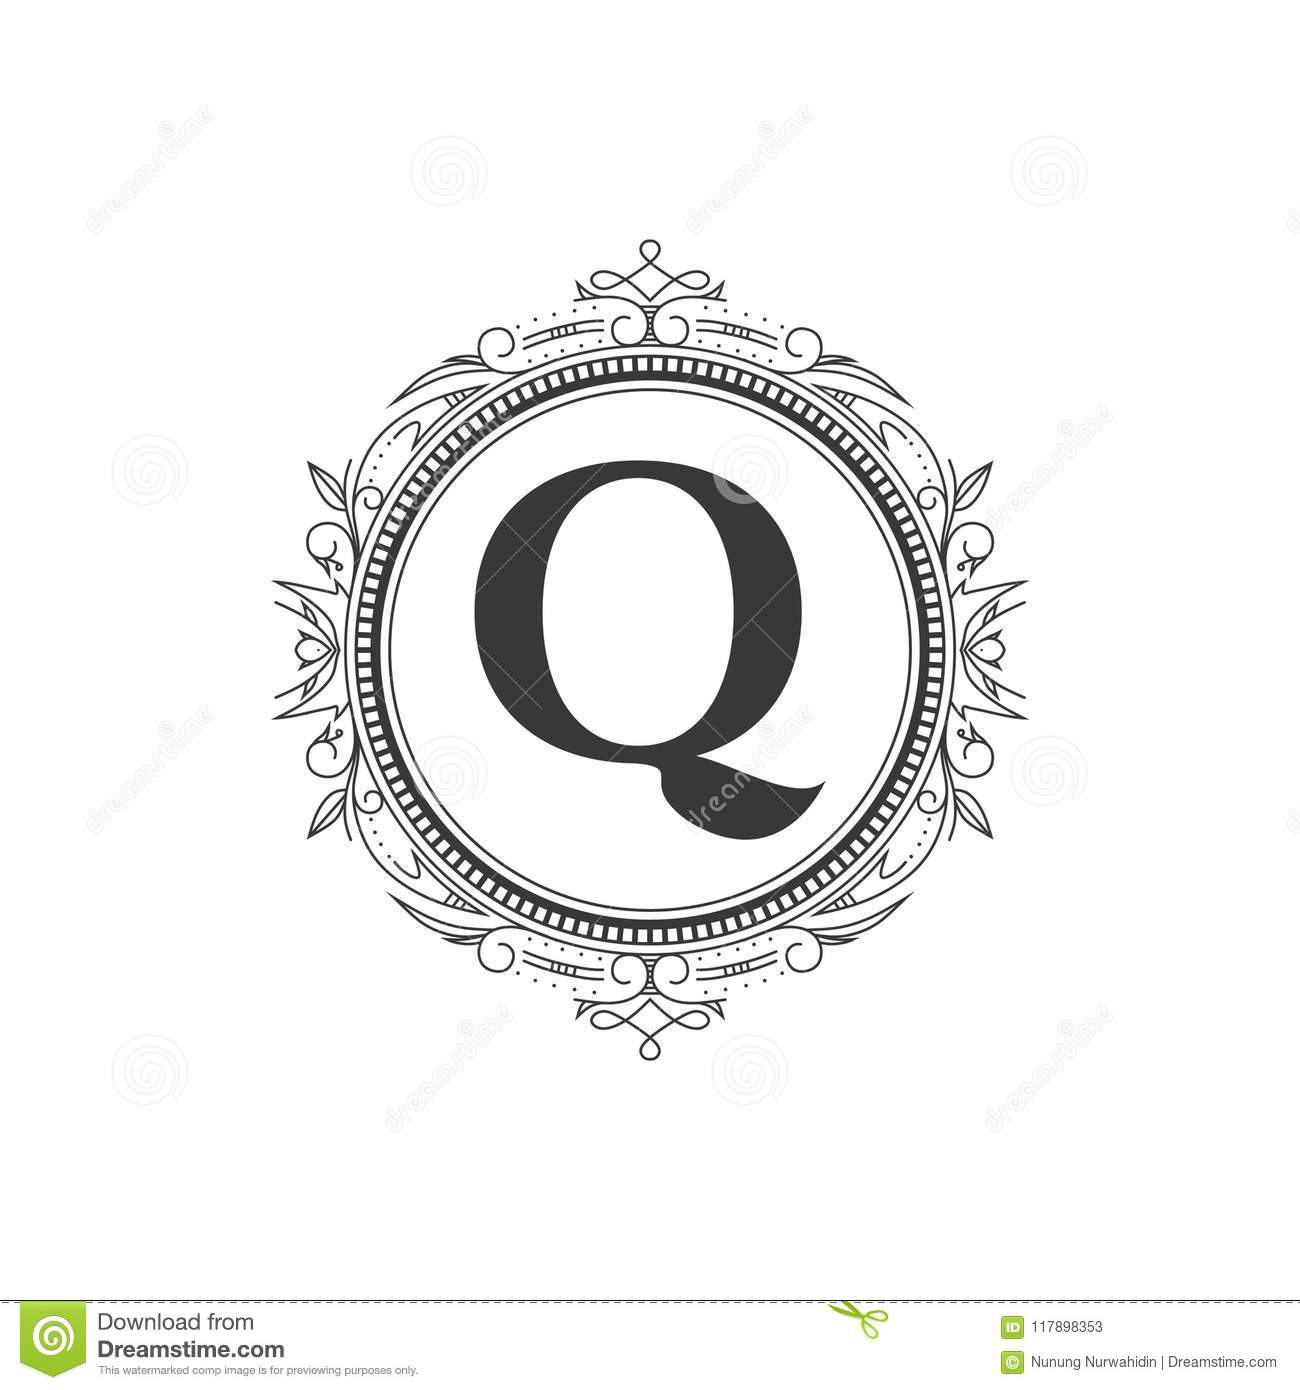 Q Initial Monogram Letter Logo Template With Luxury Ornament